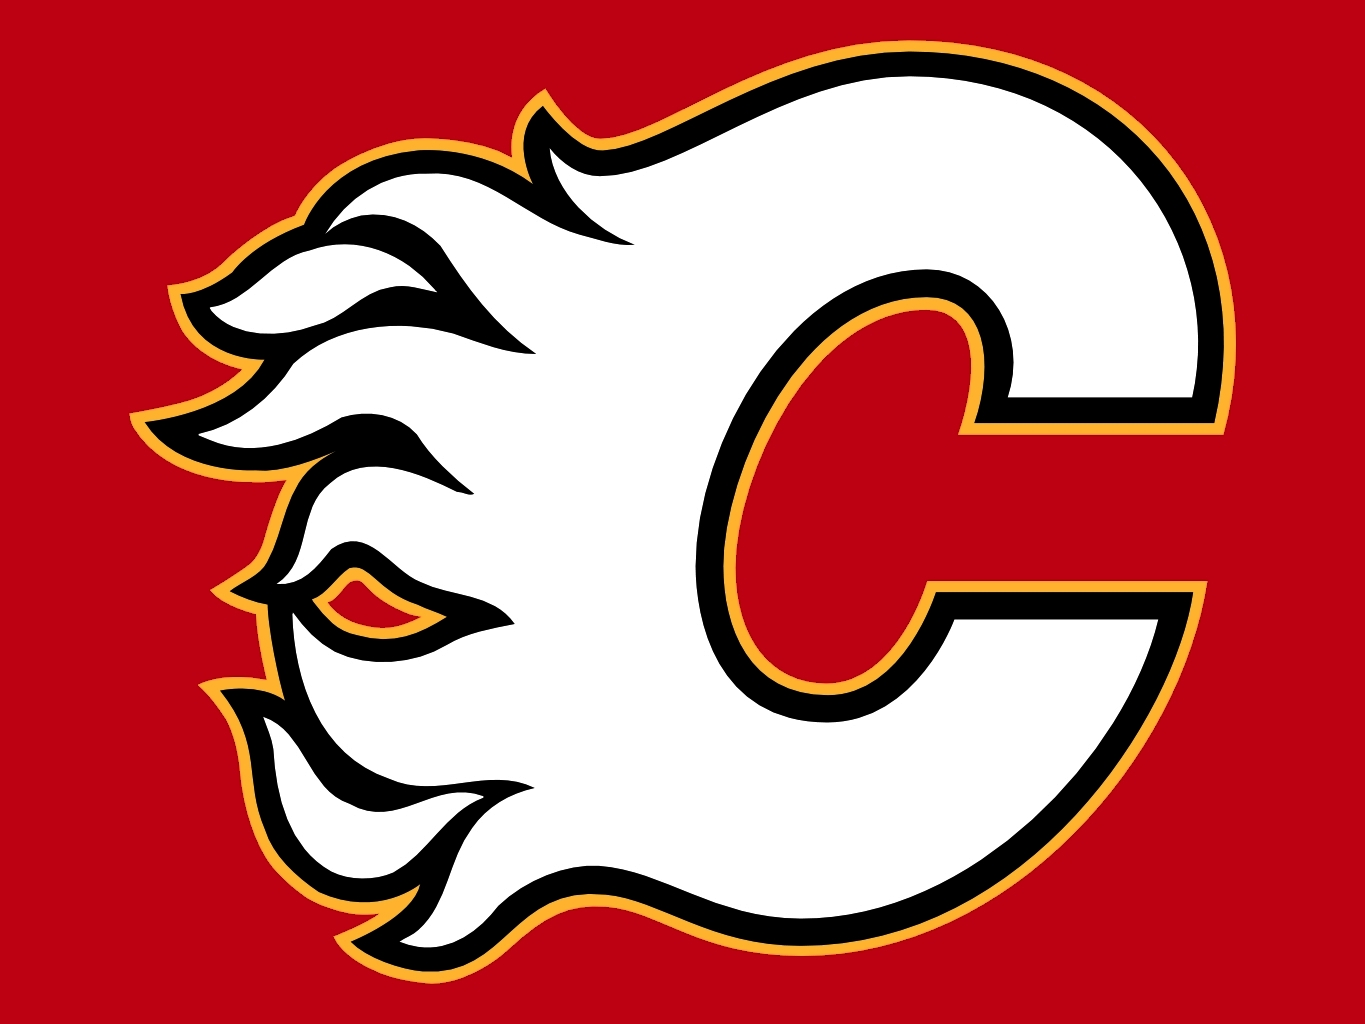 Calgary Flames wallpaper   ForWallpapercom 1365x1024